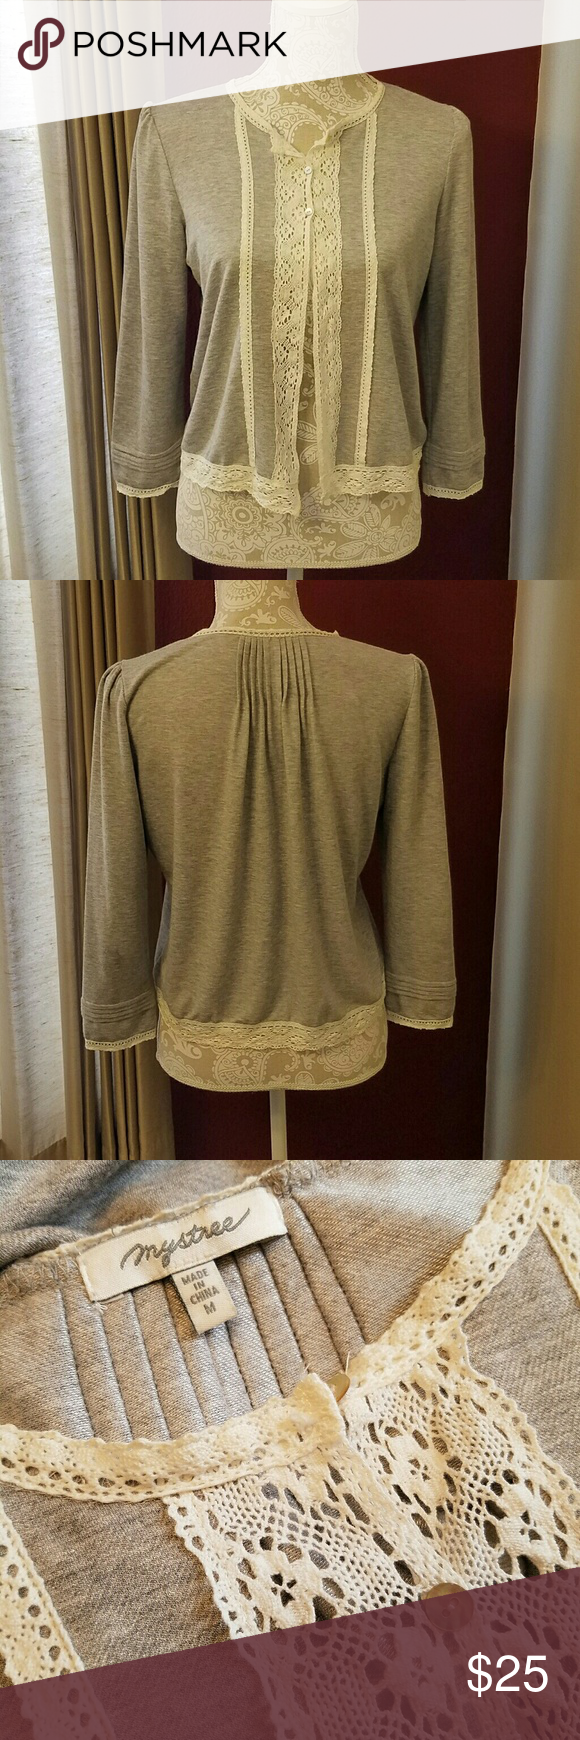 Mystree Lacey Cardigan Delicate lace details make this a wonderful piece over dresses or tops. Exquisite lace sleeve hems and pleated back and sleeve detail. 3 tiny abalone shell buttons close the top. Thin enough for every season. 3/4 sleeves to show off your favorite bracelets. Great condition. Anthropologie Tops